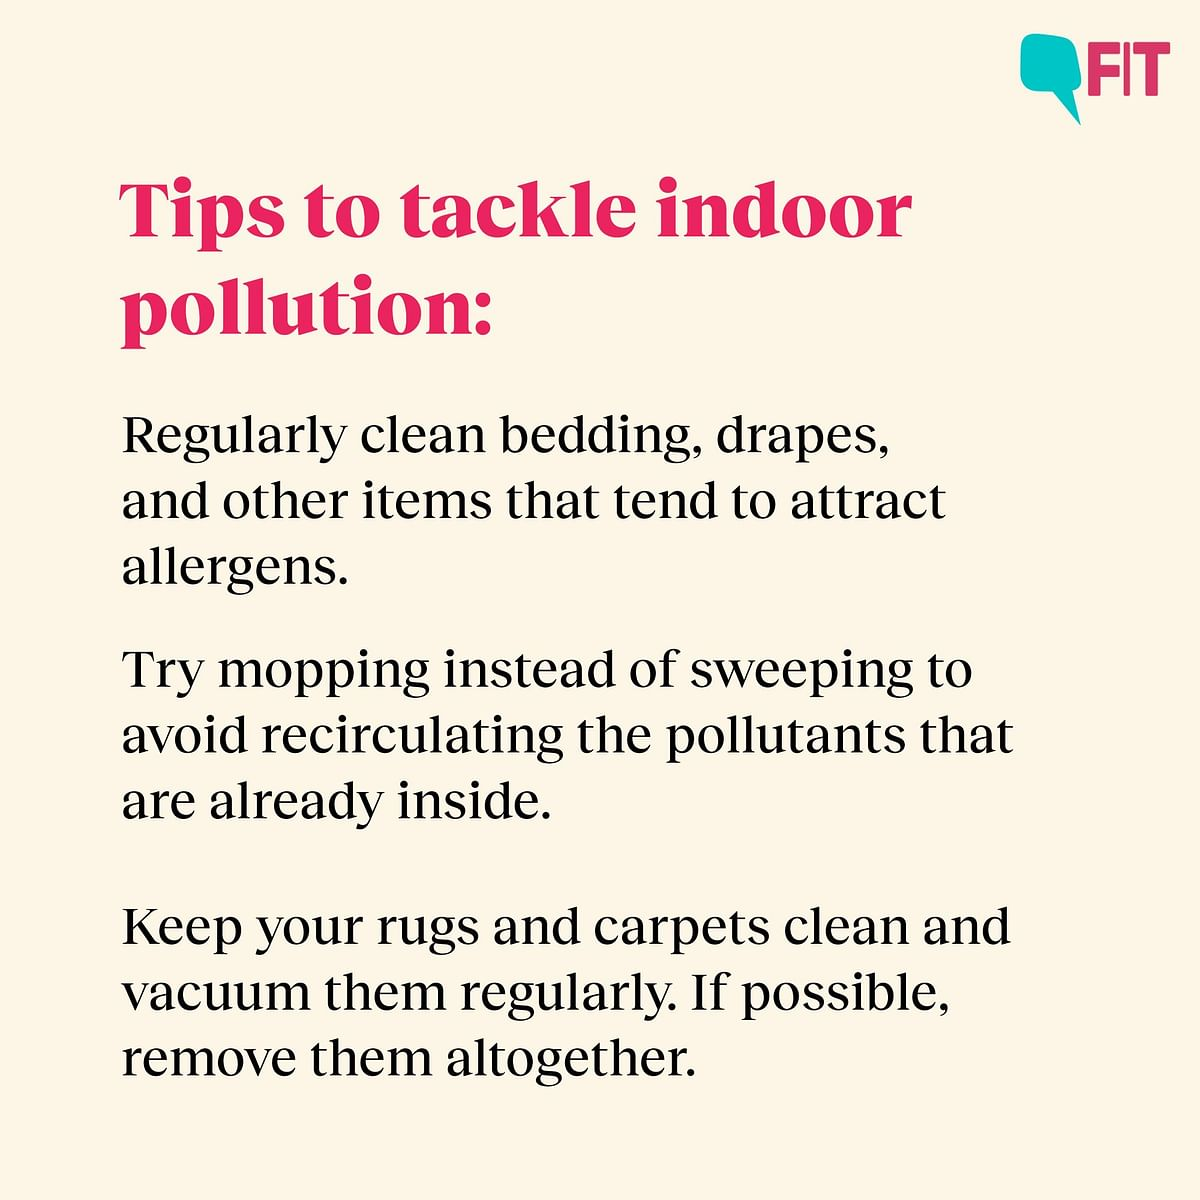 How Do You Tackle Indoor Air Pollution While Working From Home?